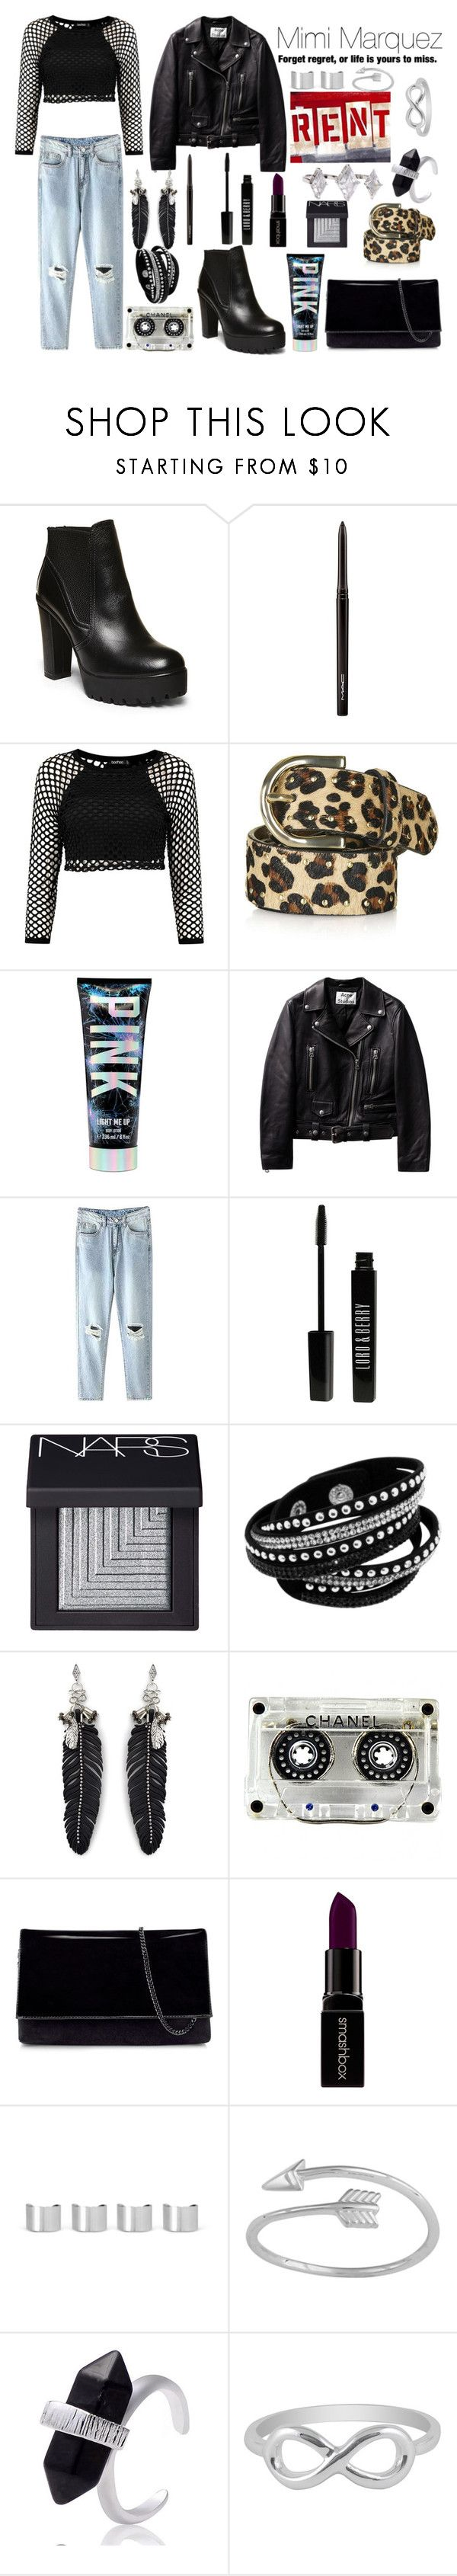 """Mimi Marquez"" ""Rent"" by ellelovesfashion07 ❤ liked on Polyvore featuring Steve Madden, MAC Cosmetics, Topshop, Lord & Berry, NARS Cosmetics, Rebecca Minkoff, Chanel, Karen Millen, Smashbox and Maison Margiela"